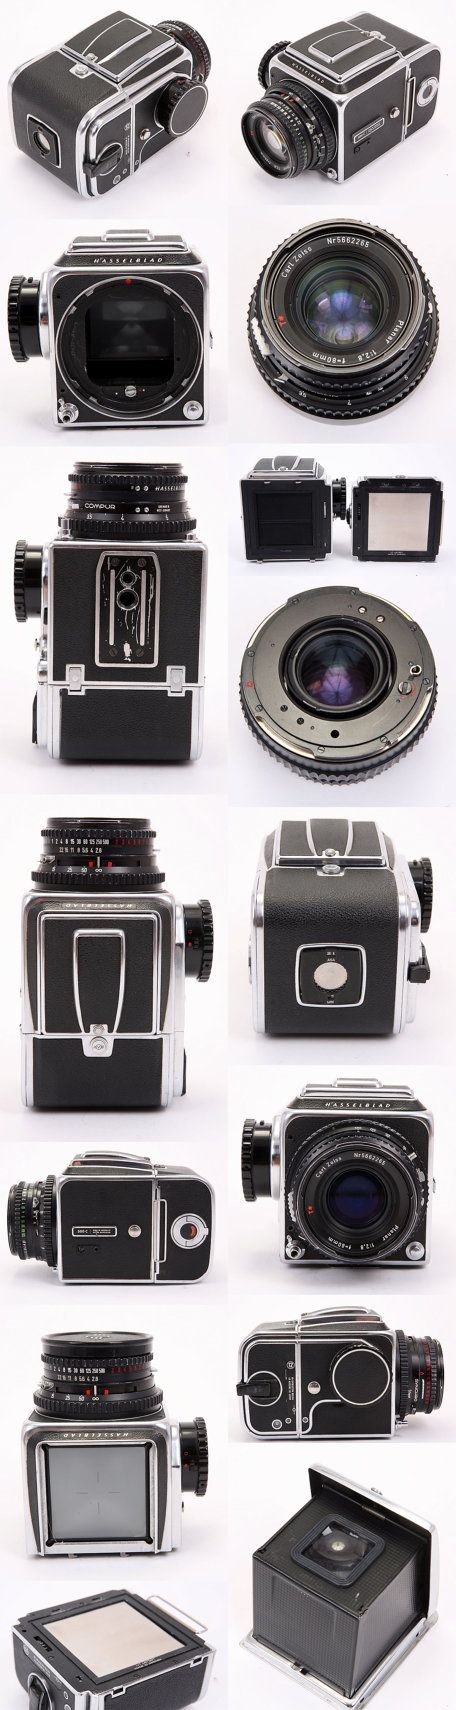 Hasselblad 500C w/ 80mm f/2.8 T, Finder & A12 Film Back 1961